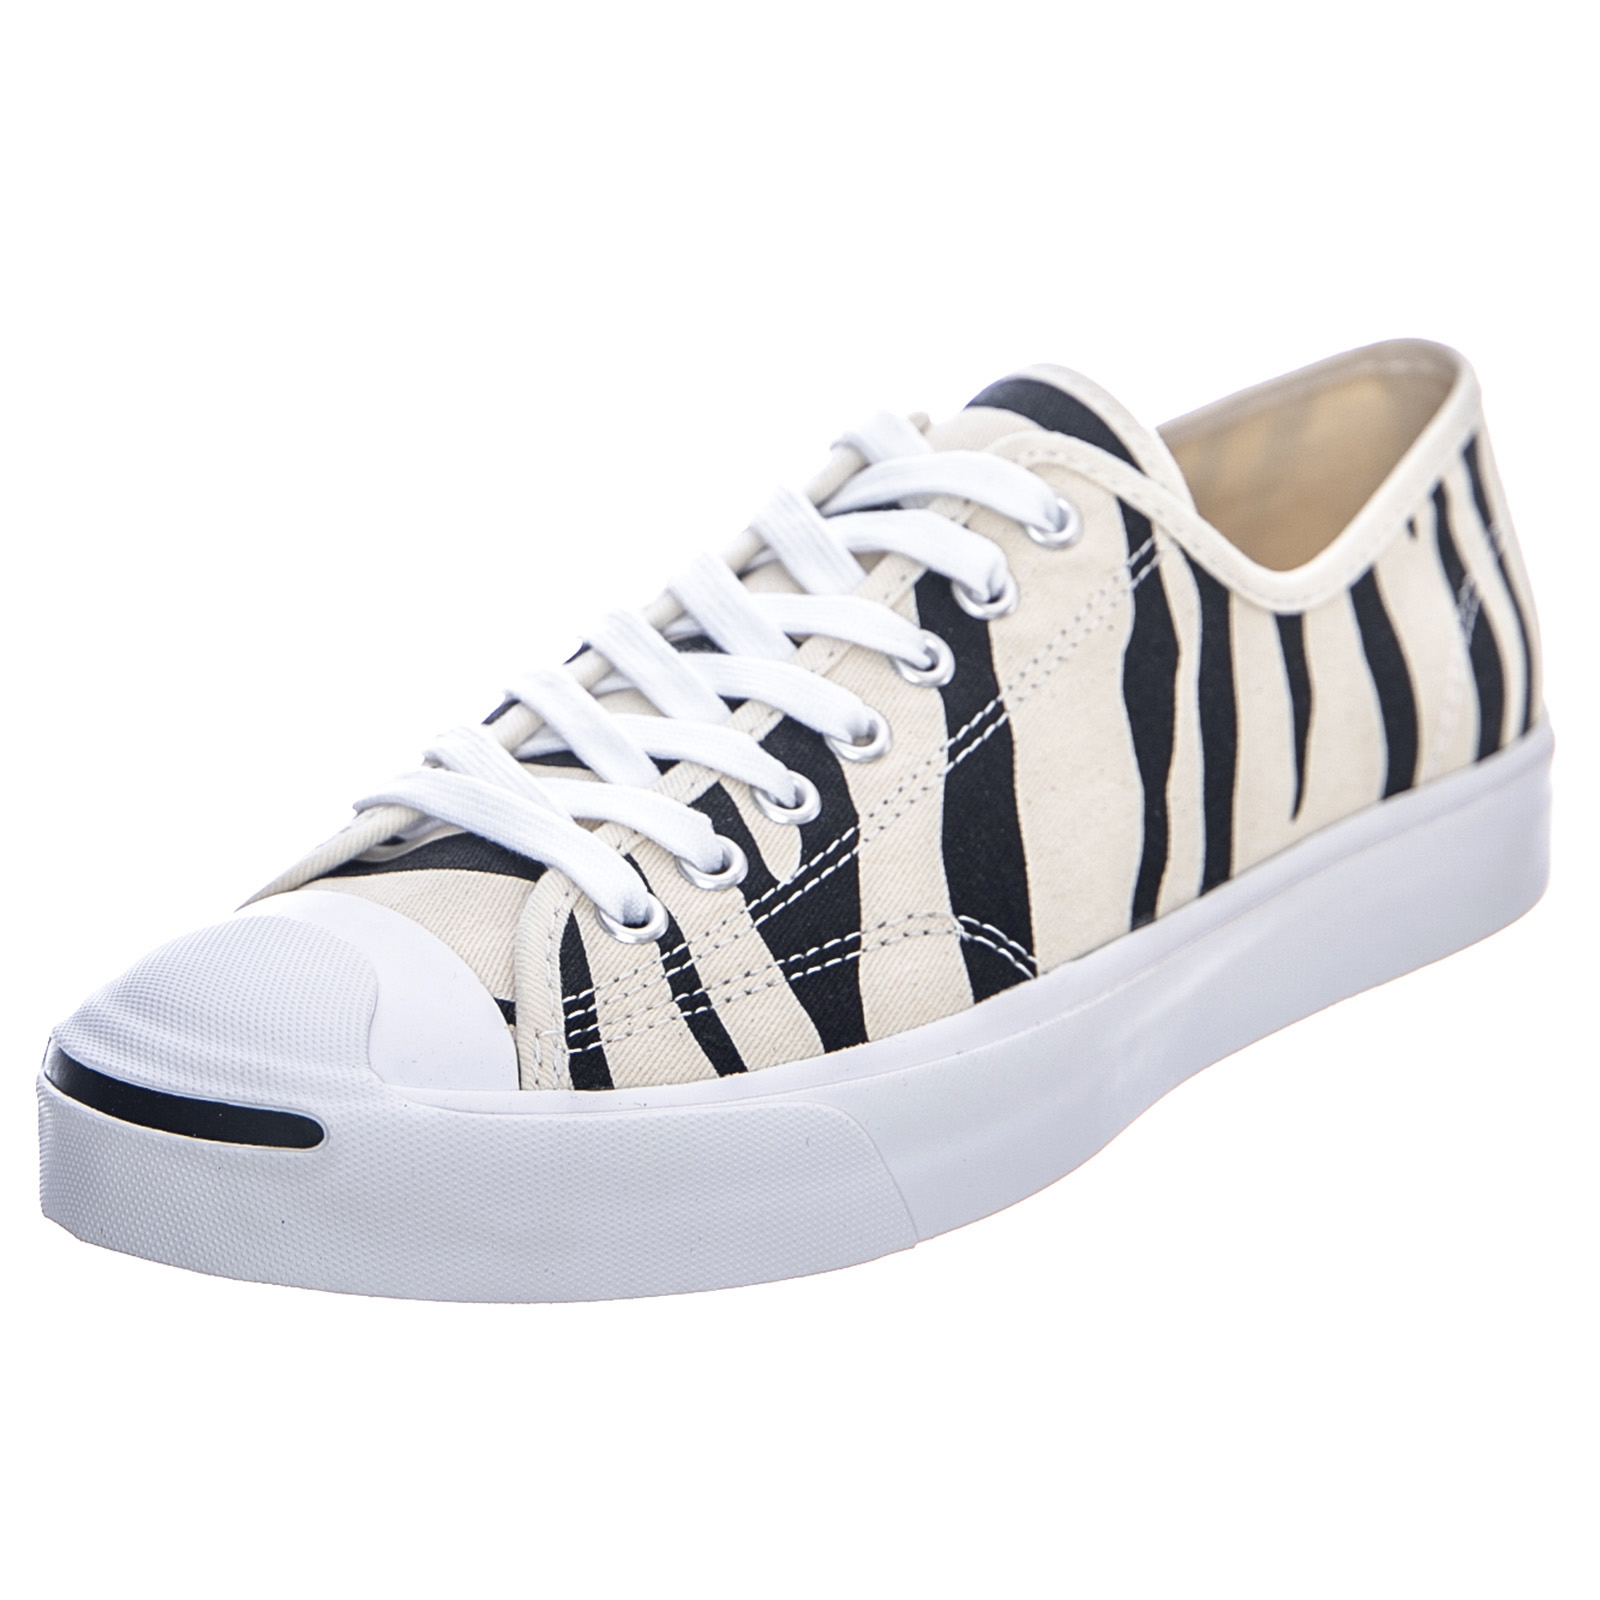 Converse Jack Purcell Ox Blackgreigewhite Converse Homme